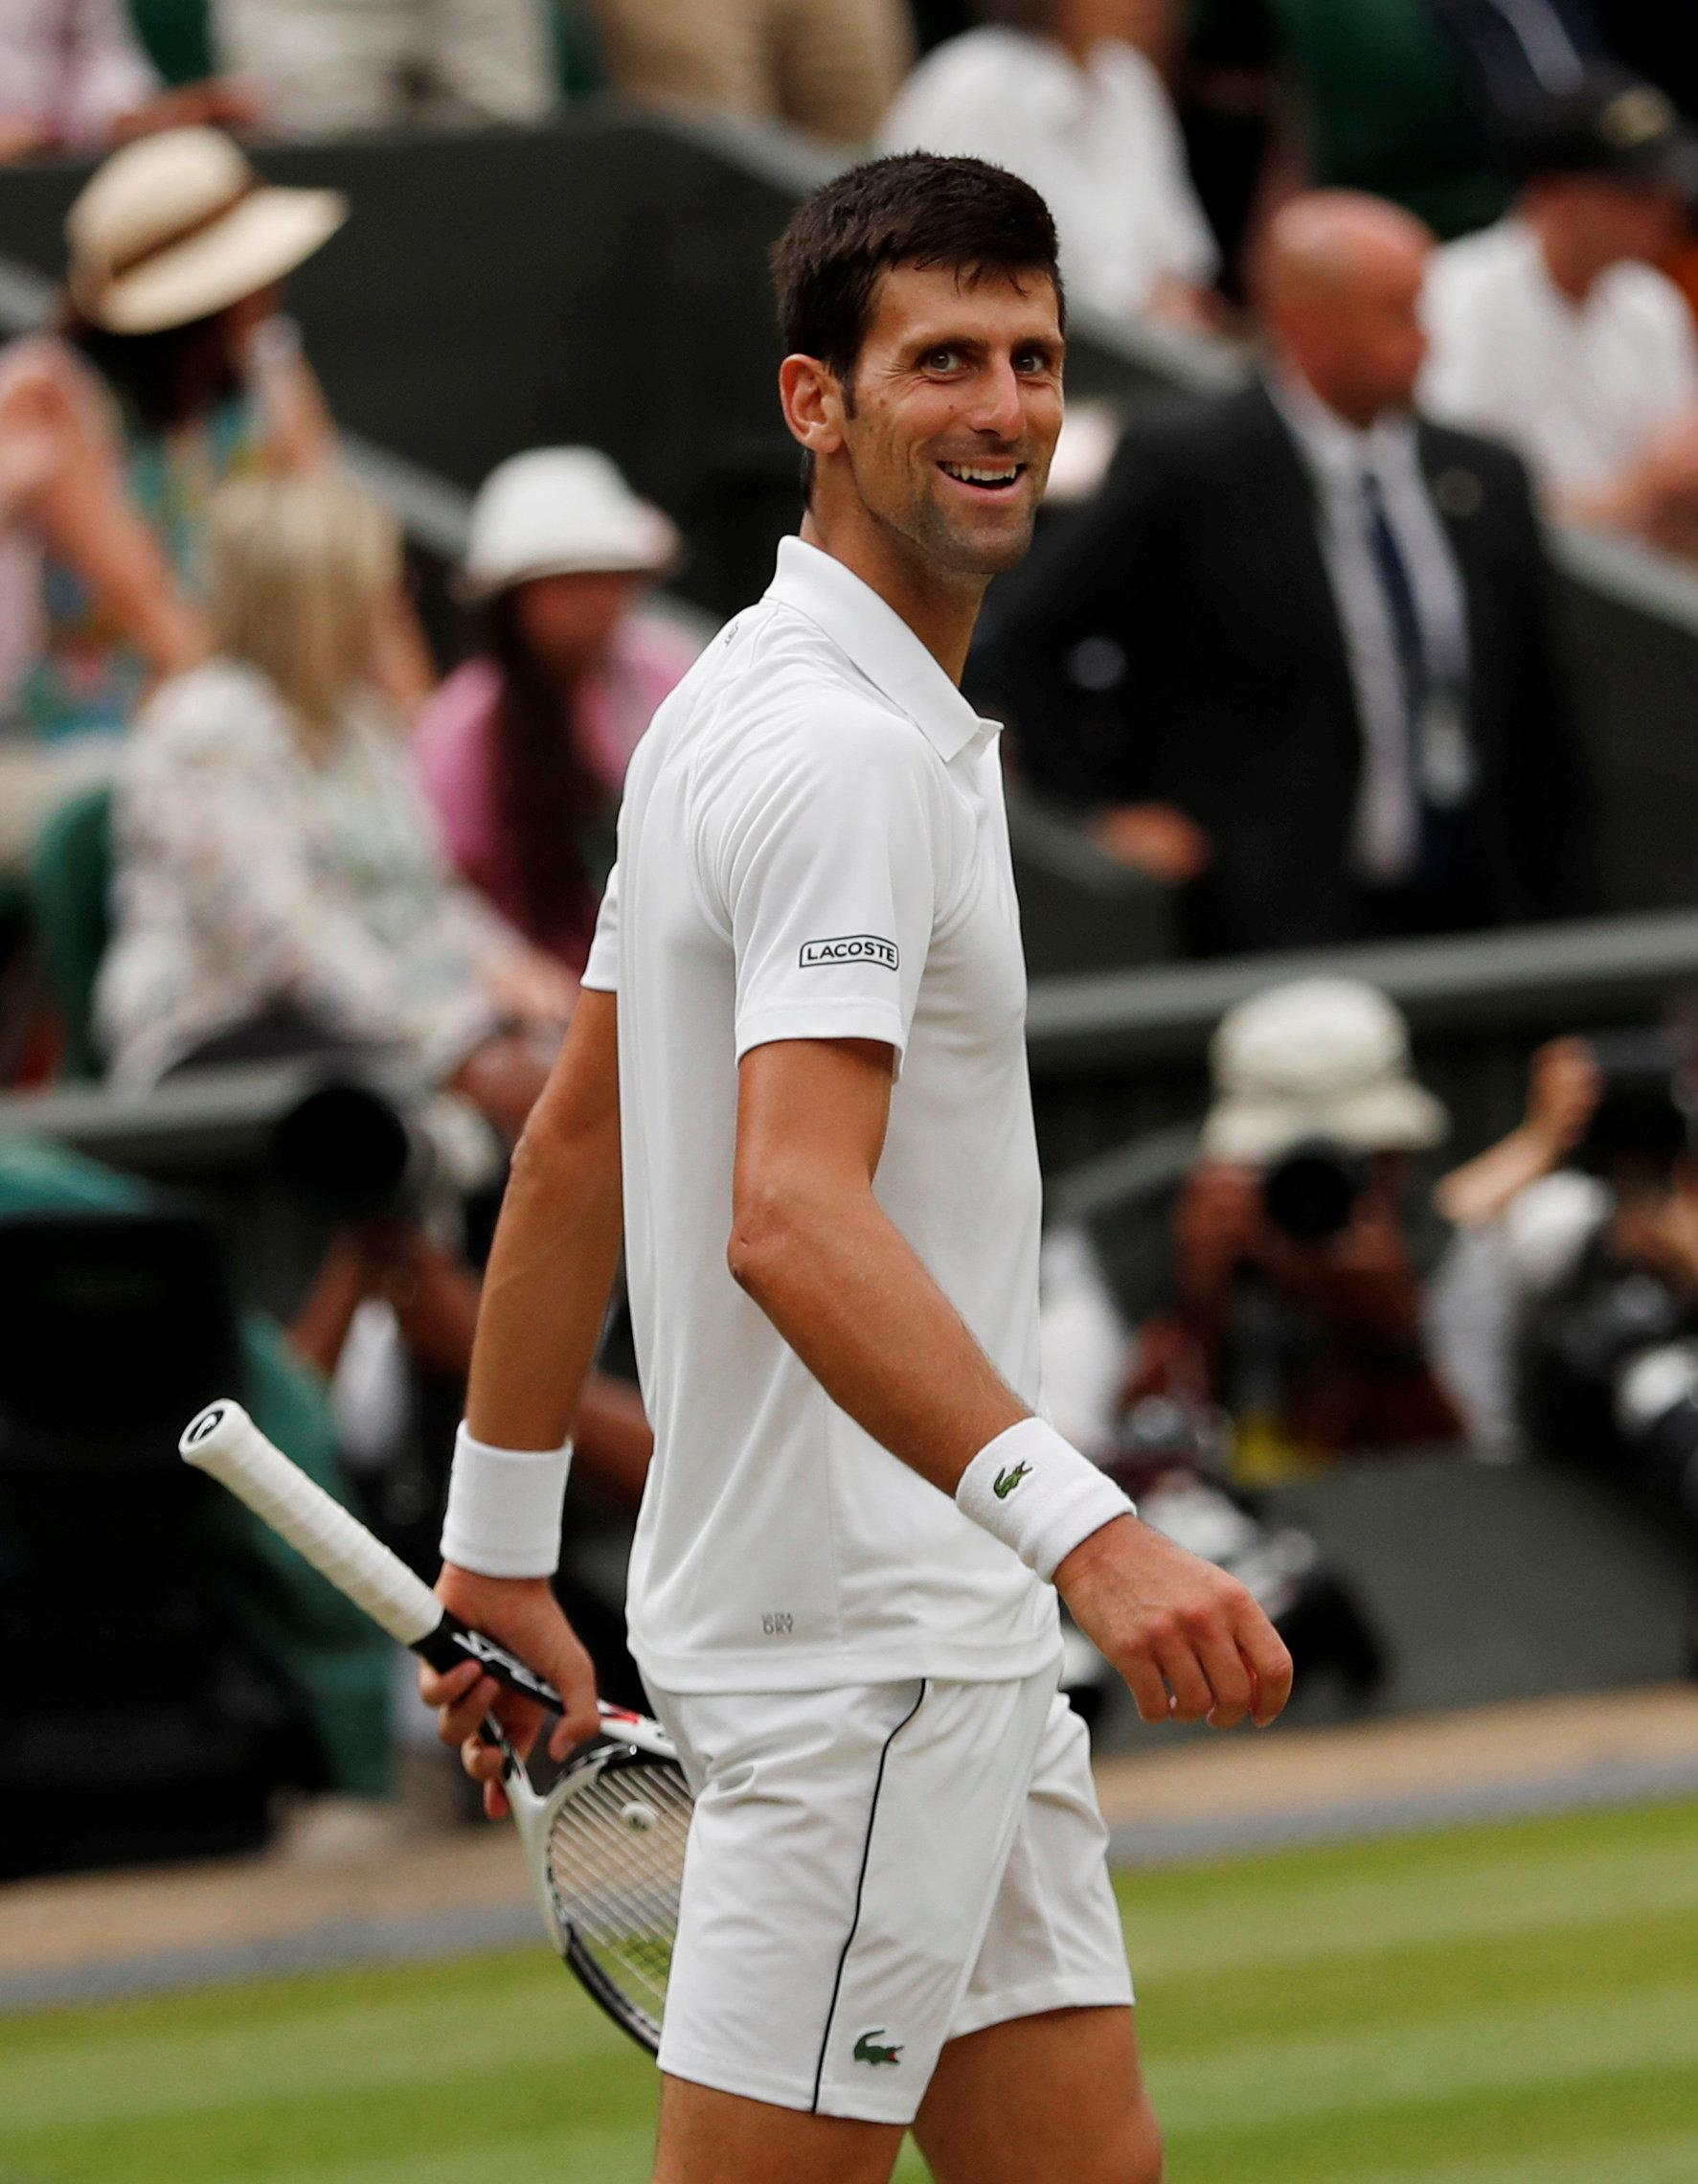 Novak Djokovic is into the Wimbledon final